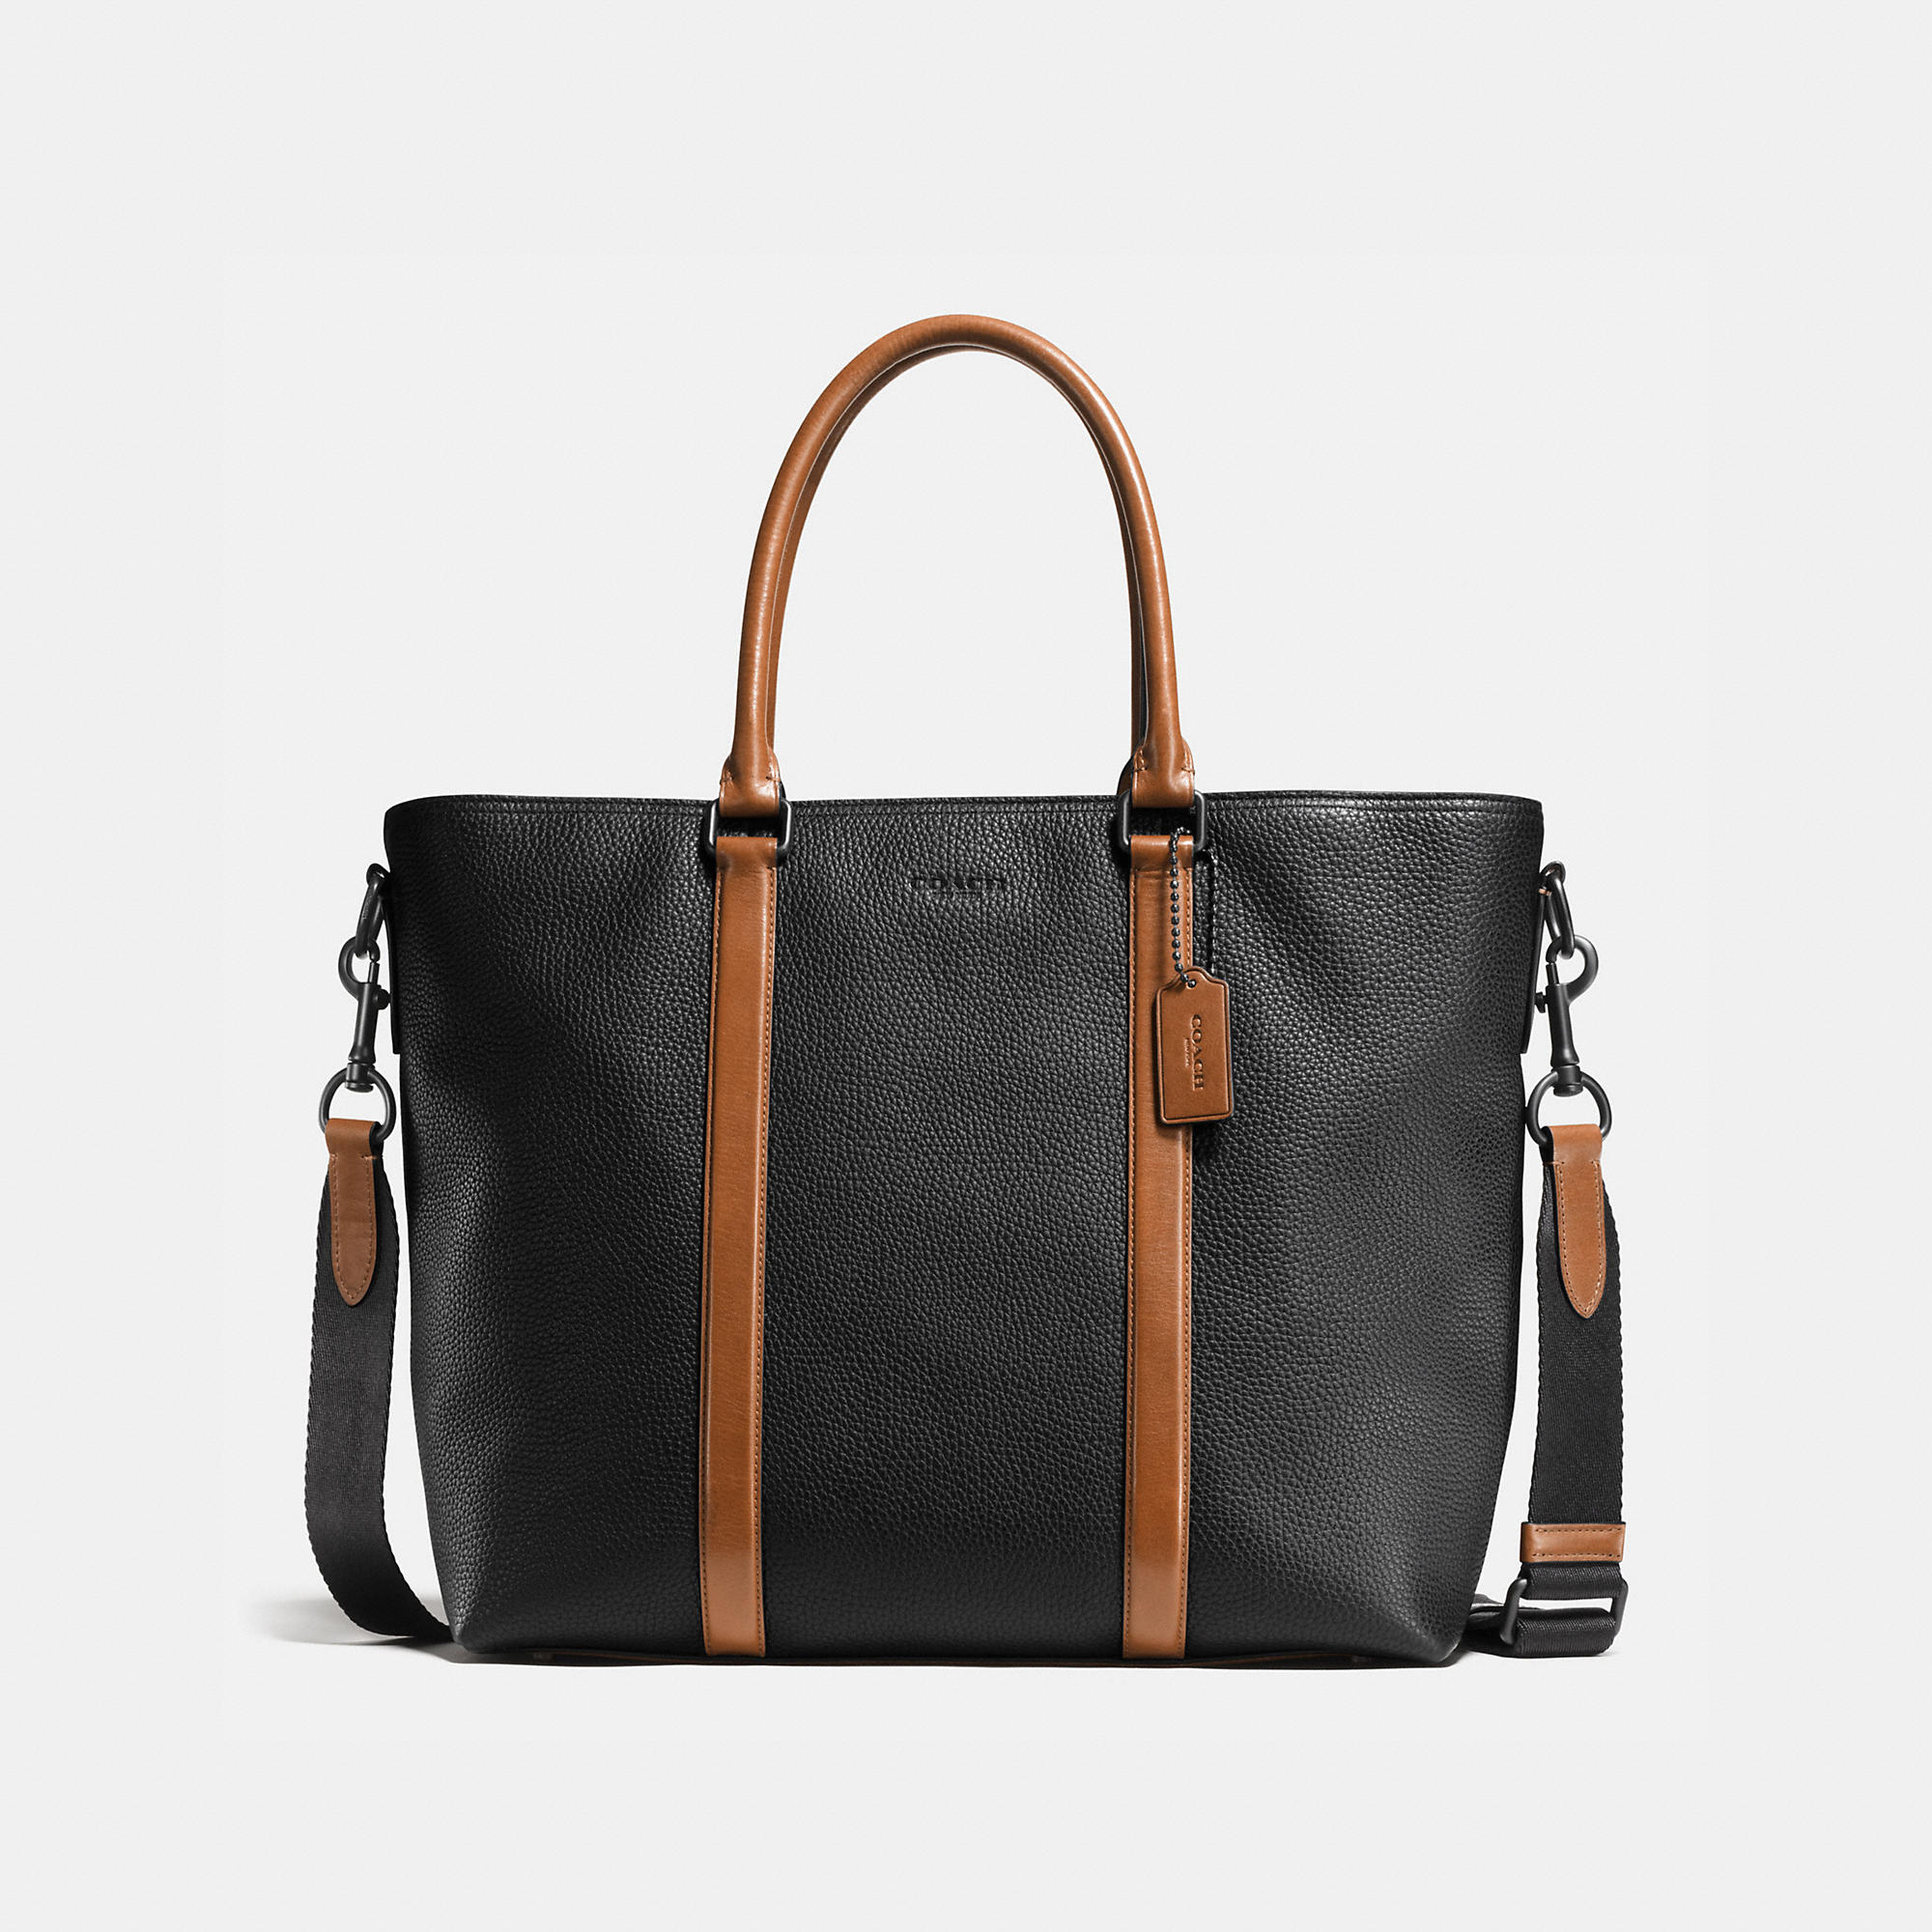 Coach Metropolitan Tote In Material Block Leather